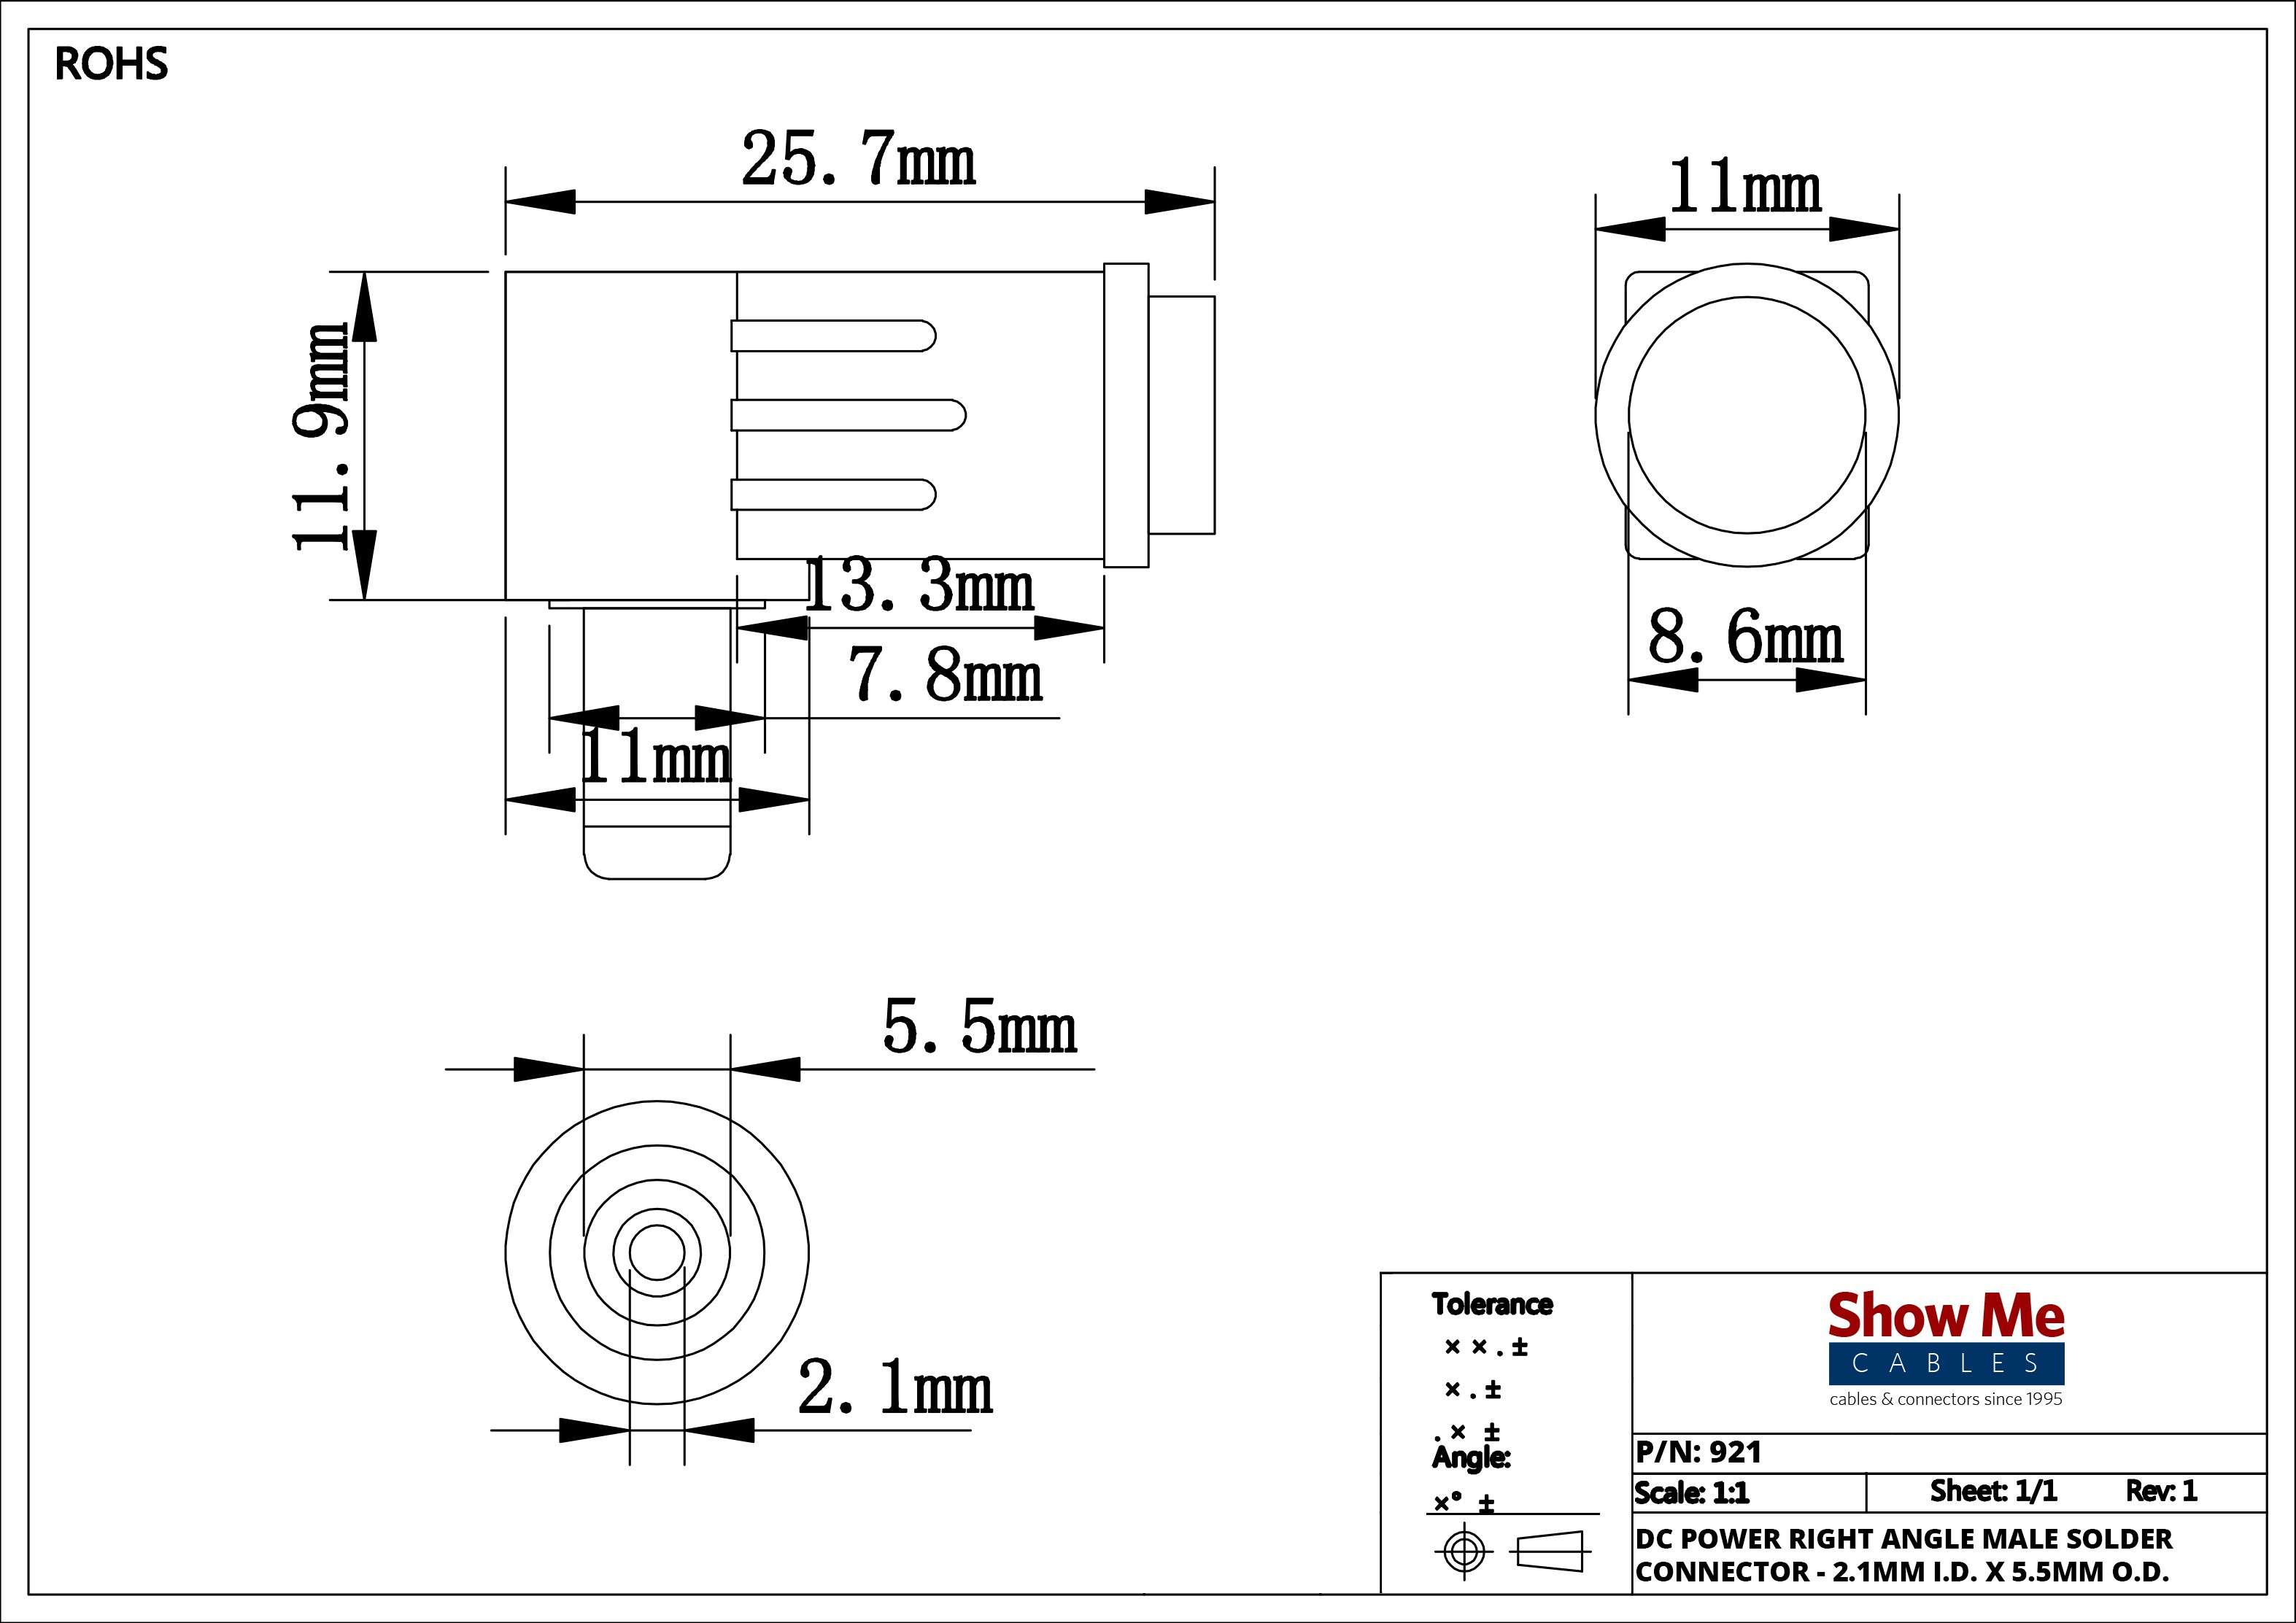 heartland rv wiring diagram Collection-home speaker wiring diagram 3 5 mm stereo jack wiring diagram elegant 2 5mm id od power best 1a 20-m